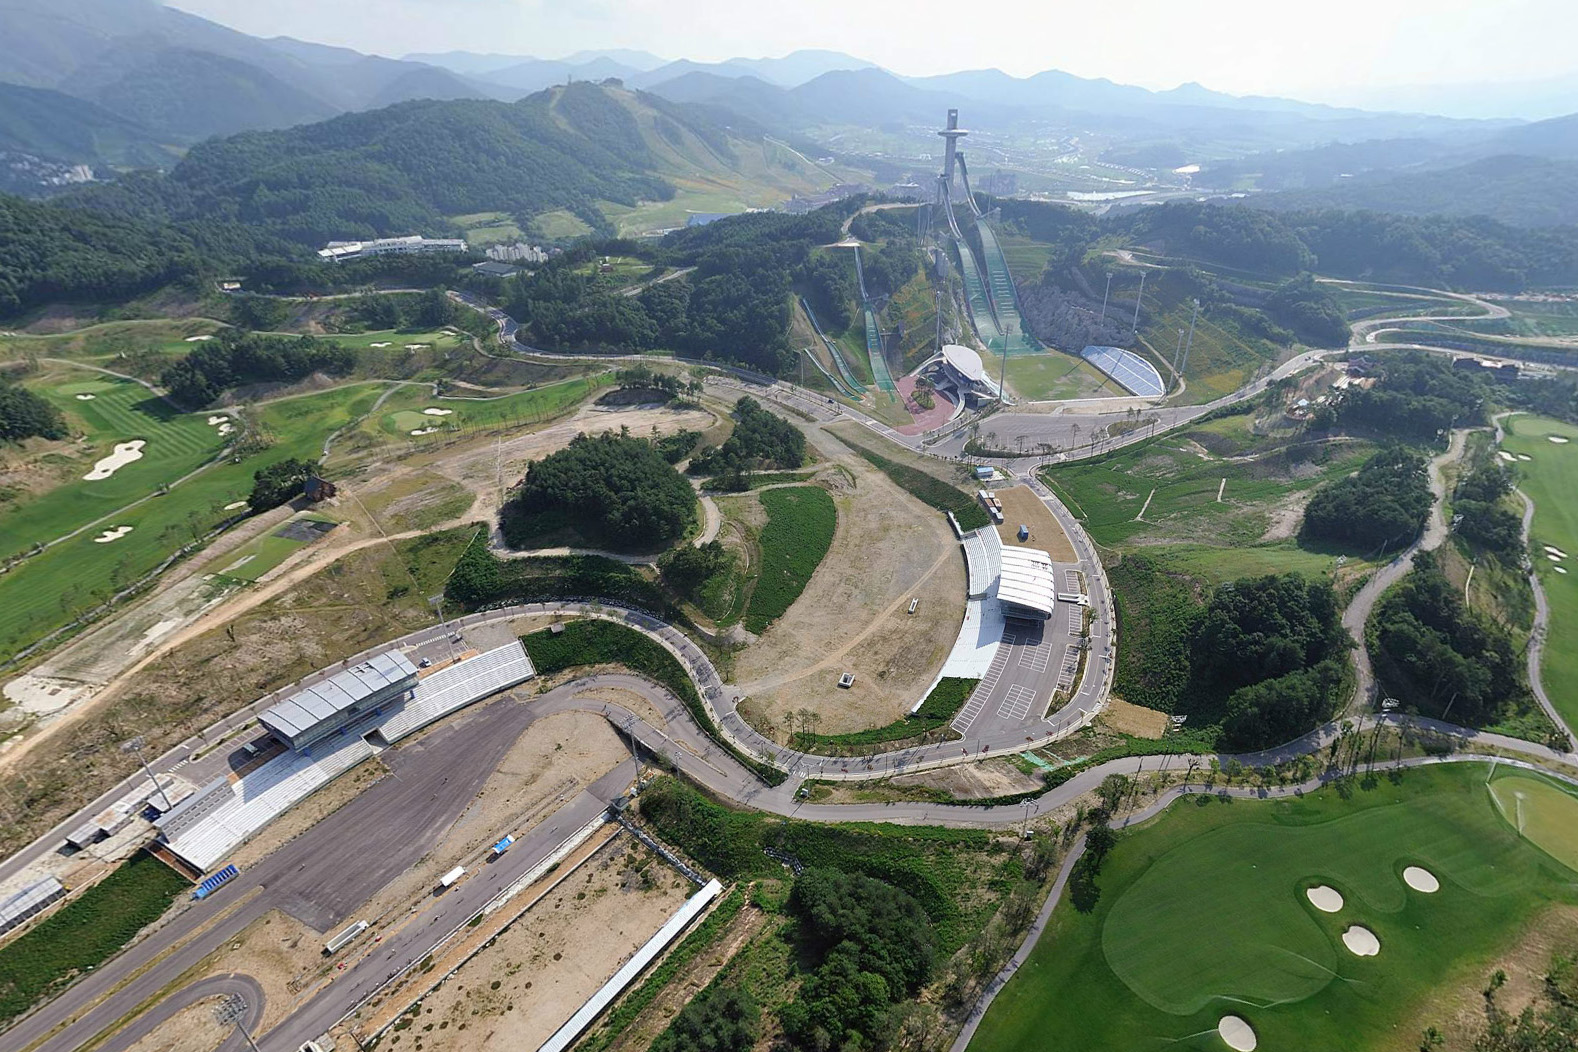 """The 2018 Winter Olympics site in PyeongChang, Korea is largely complete in a compact, """"light touch"""" plan by design-build team including Taeyoung, SWA Group and Space Group architects. Image courtesy Alpensia."""